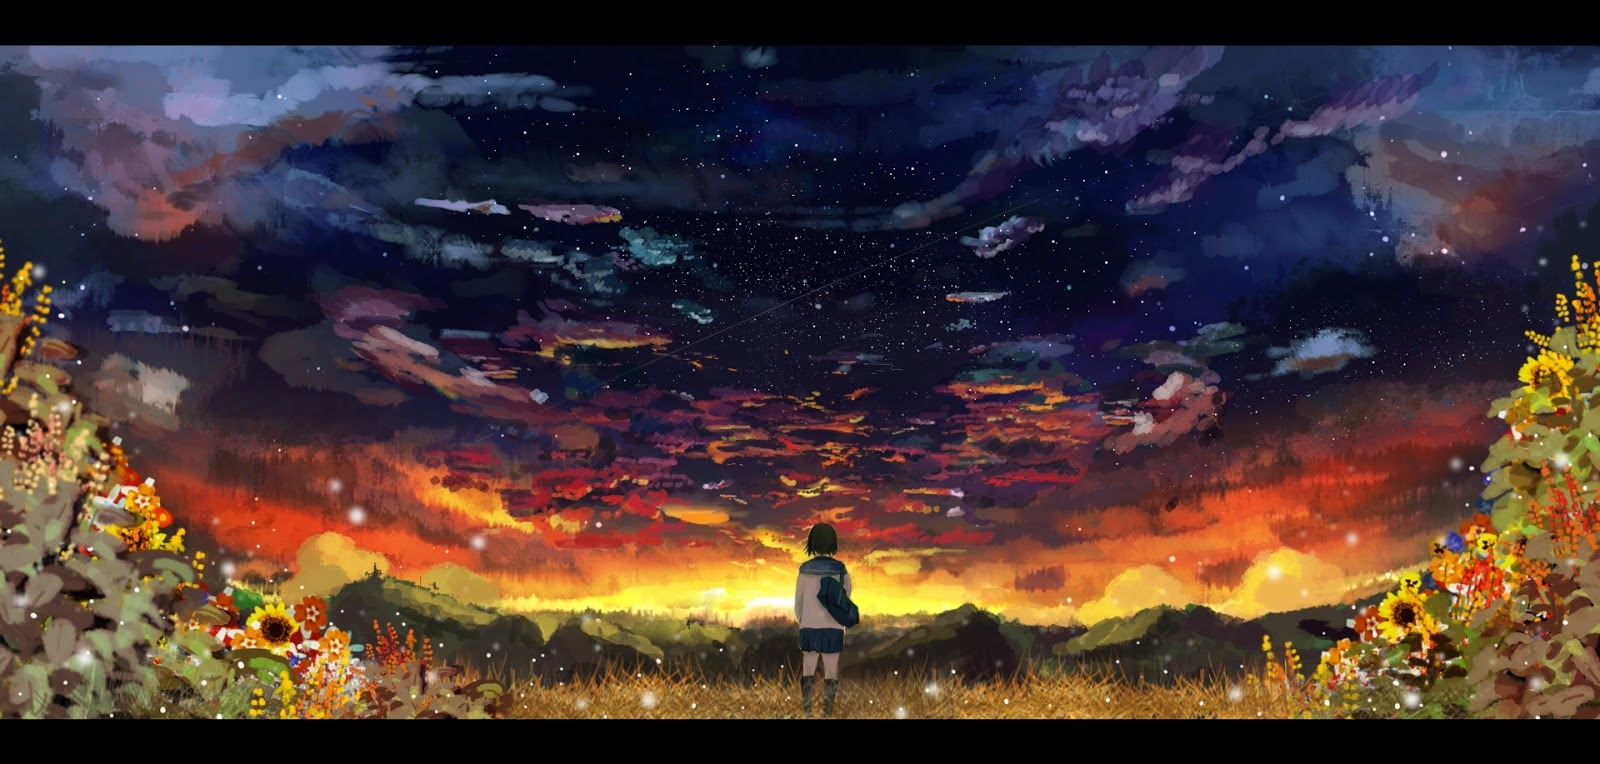 scenery flowers sky night clouds stars d27 wallpapers